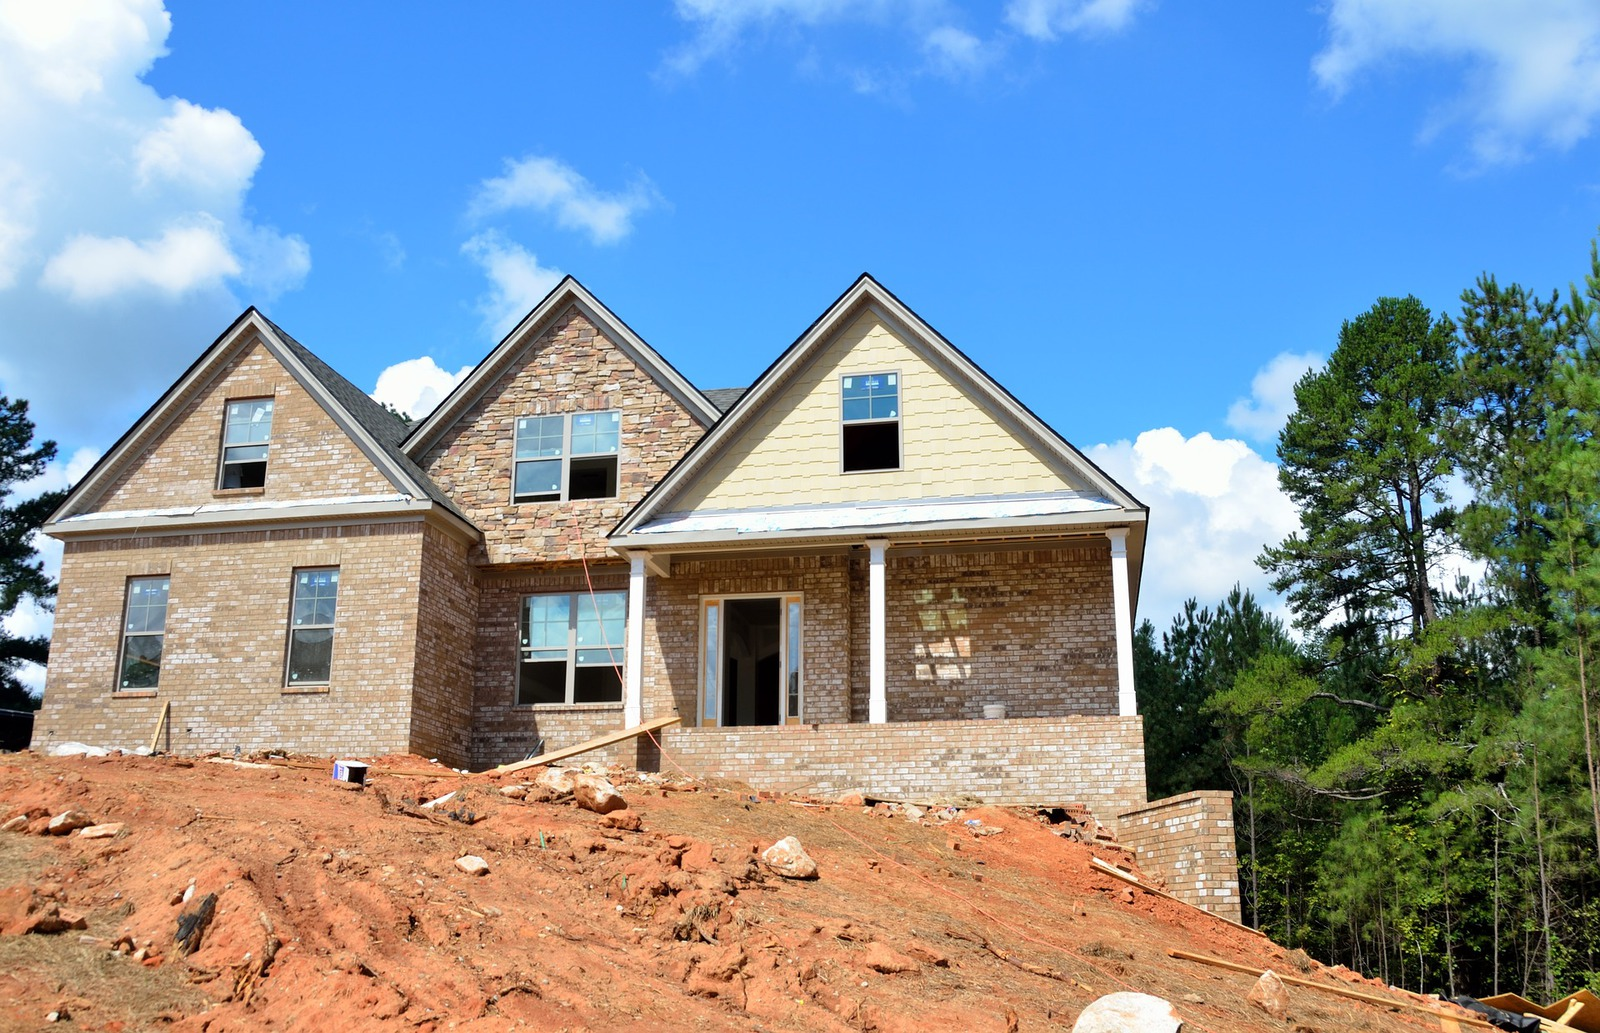 The 5 Definitive Elements of New Home Construction Cost